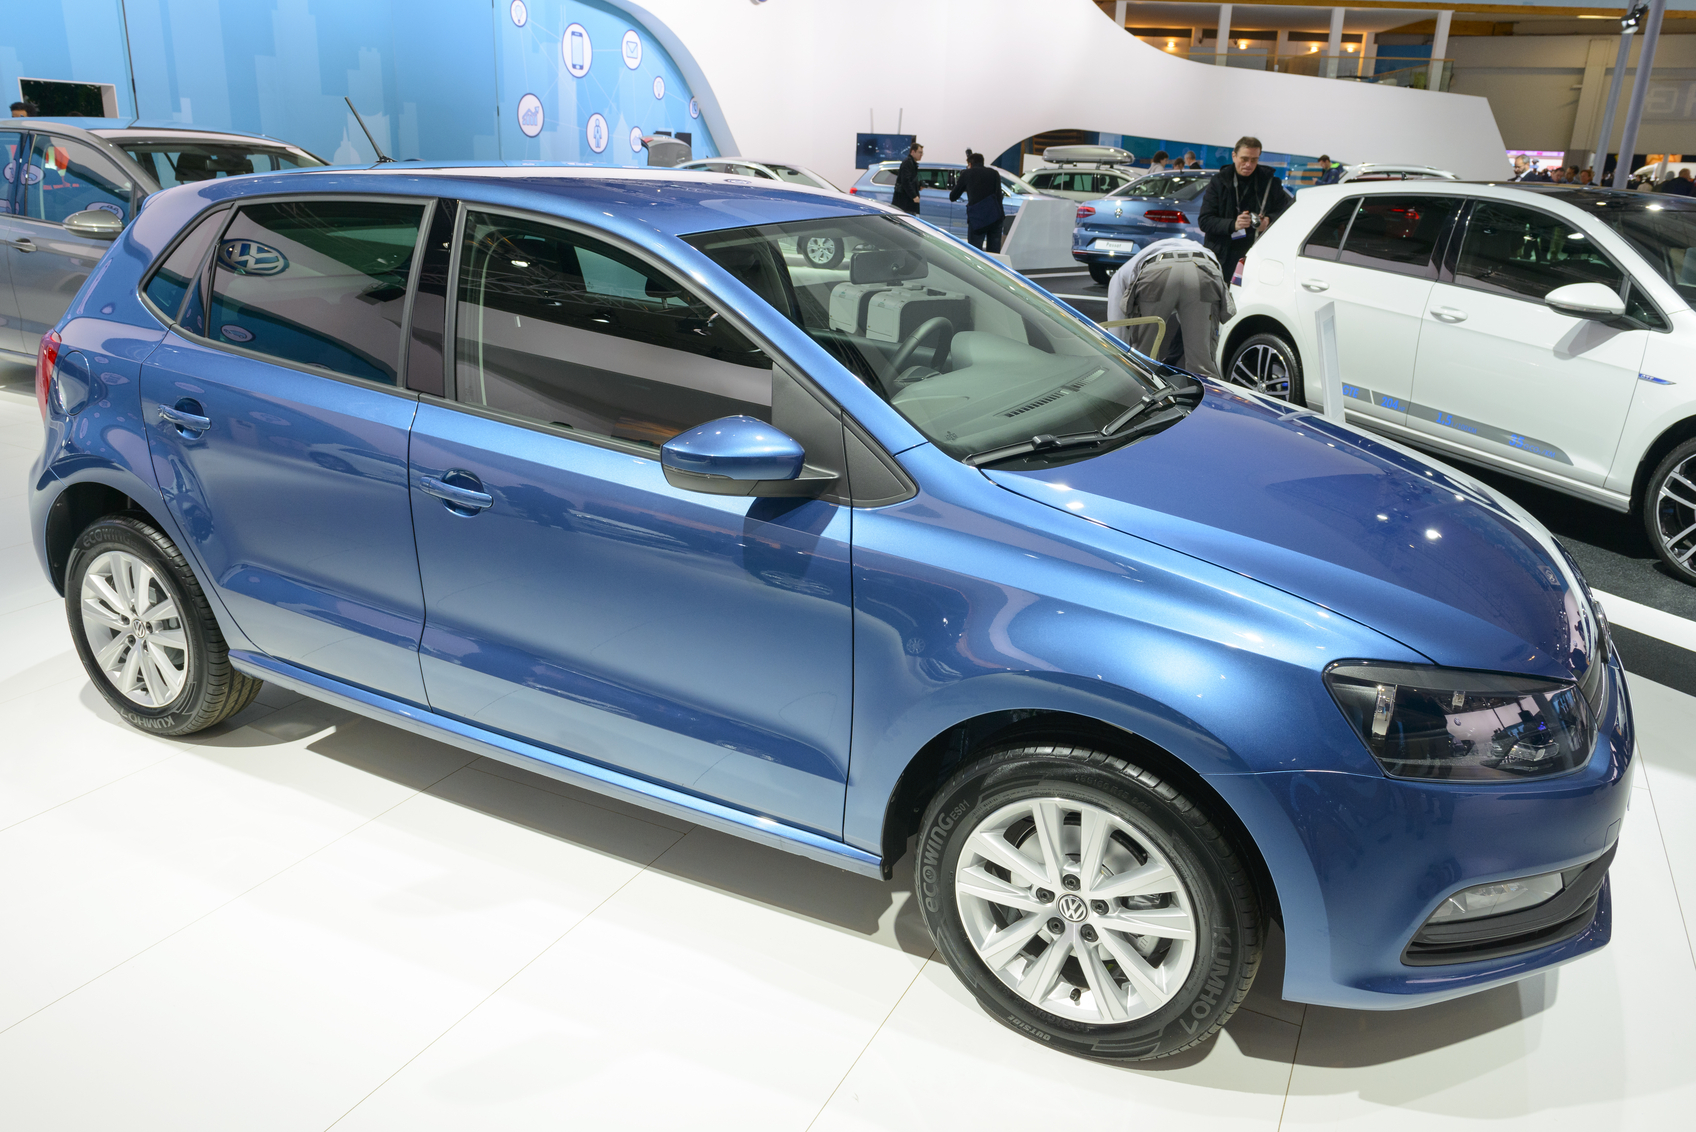 Brussels, Belgium - January 15, 2015: Volkswagen Polo hatchback car on display during the 2015 Brussels motor show. People in the background are looking at the cars.